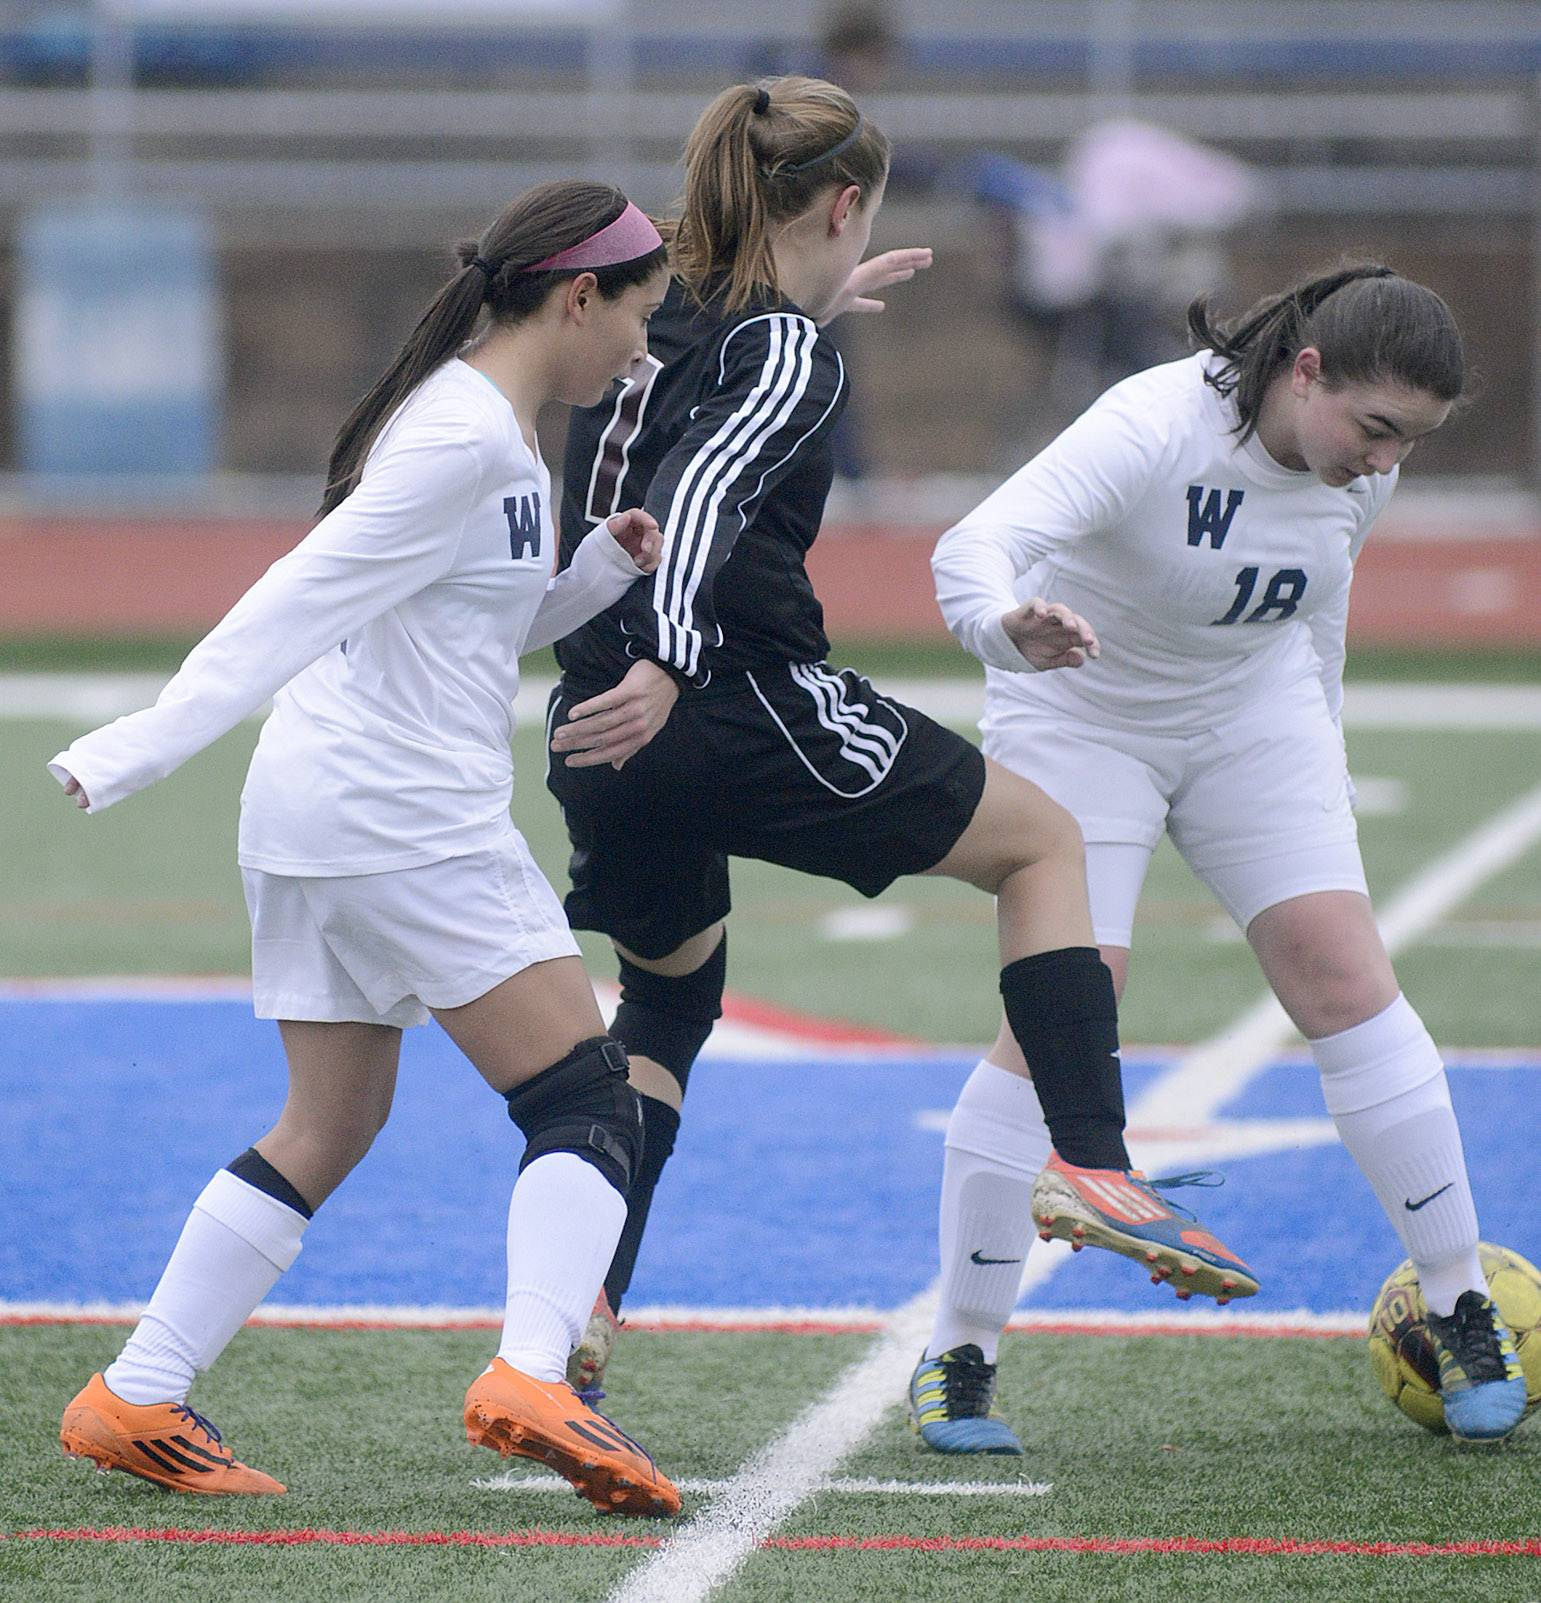 West Aurora's Jocelyn Ferrar, left, and Alicia Rotolo, far right, sandwich Wheaton Academy's Jamie Netzley as they try to keep control of the ball in the first half on Wednesday, March 19.